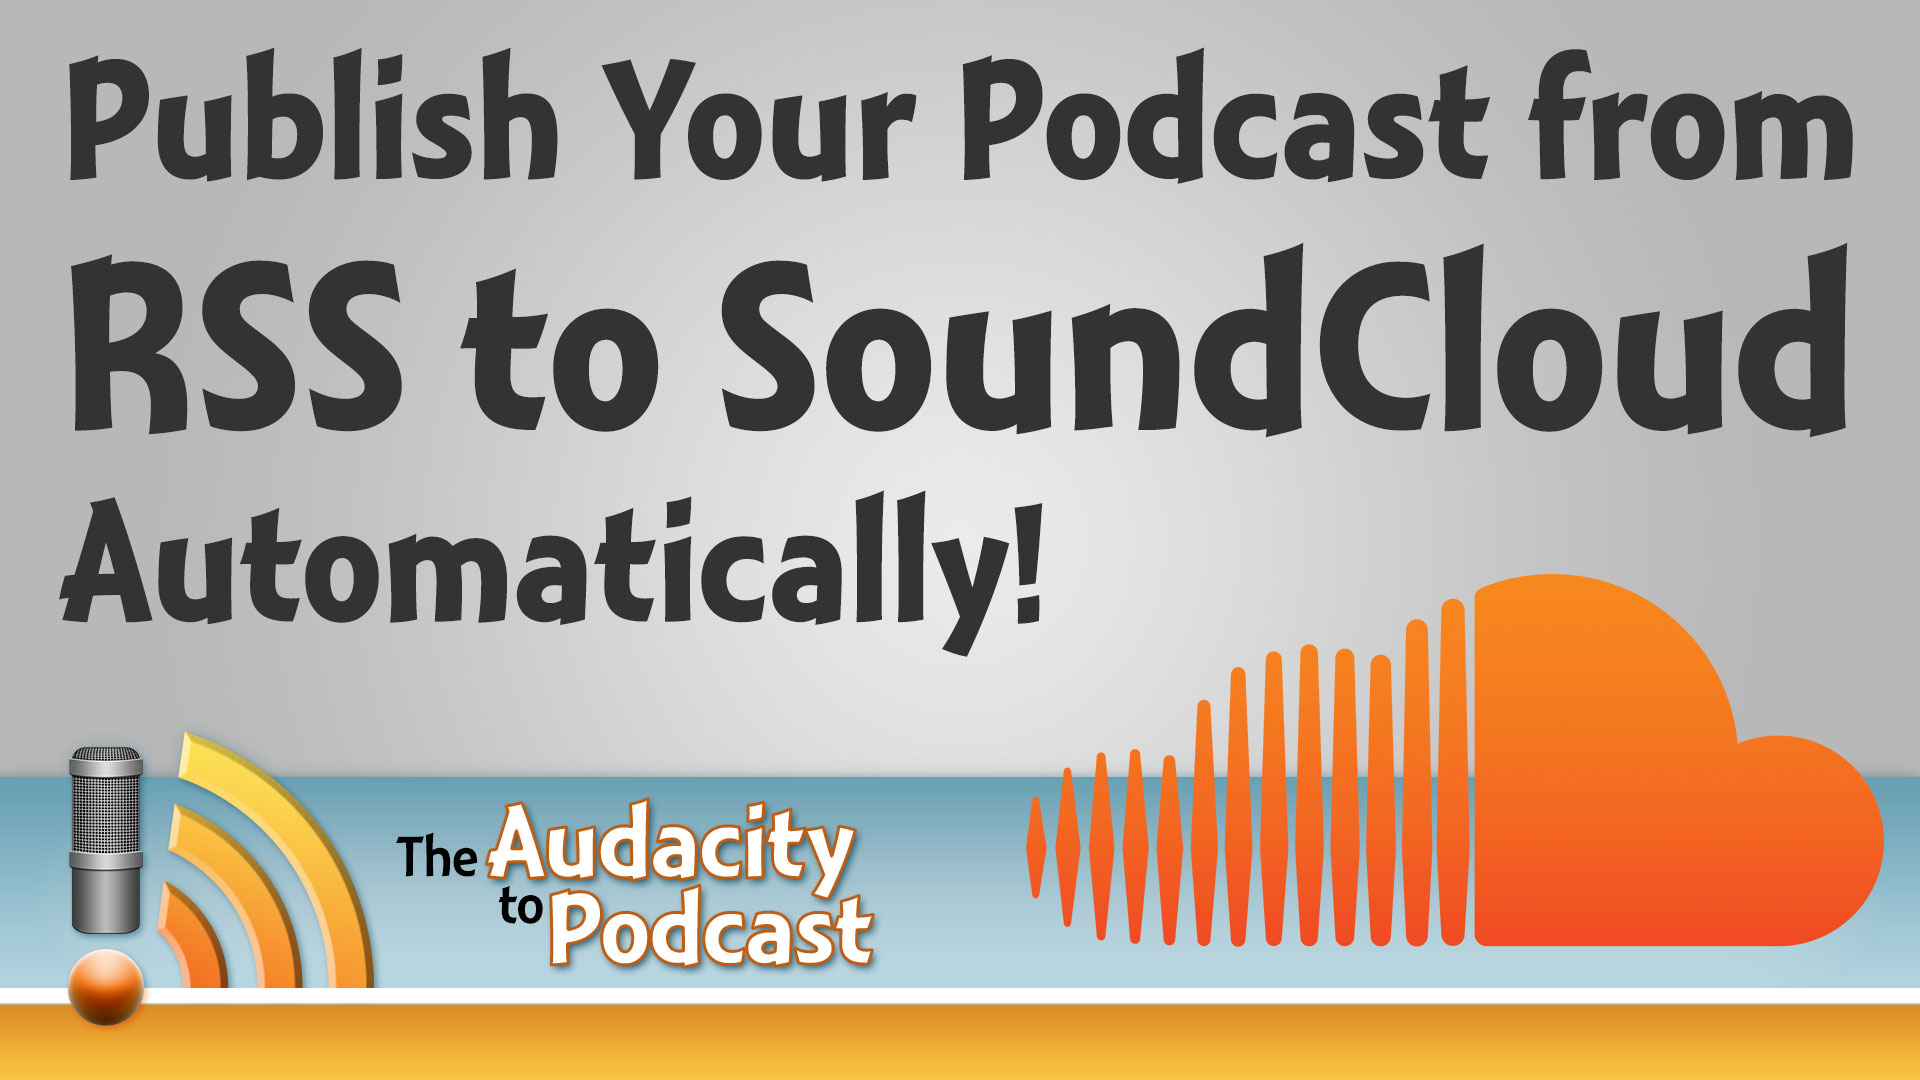 How to Publish Podcast Episodes to SoundCloud from RSS